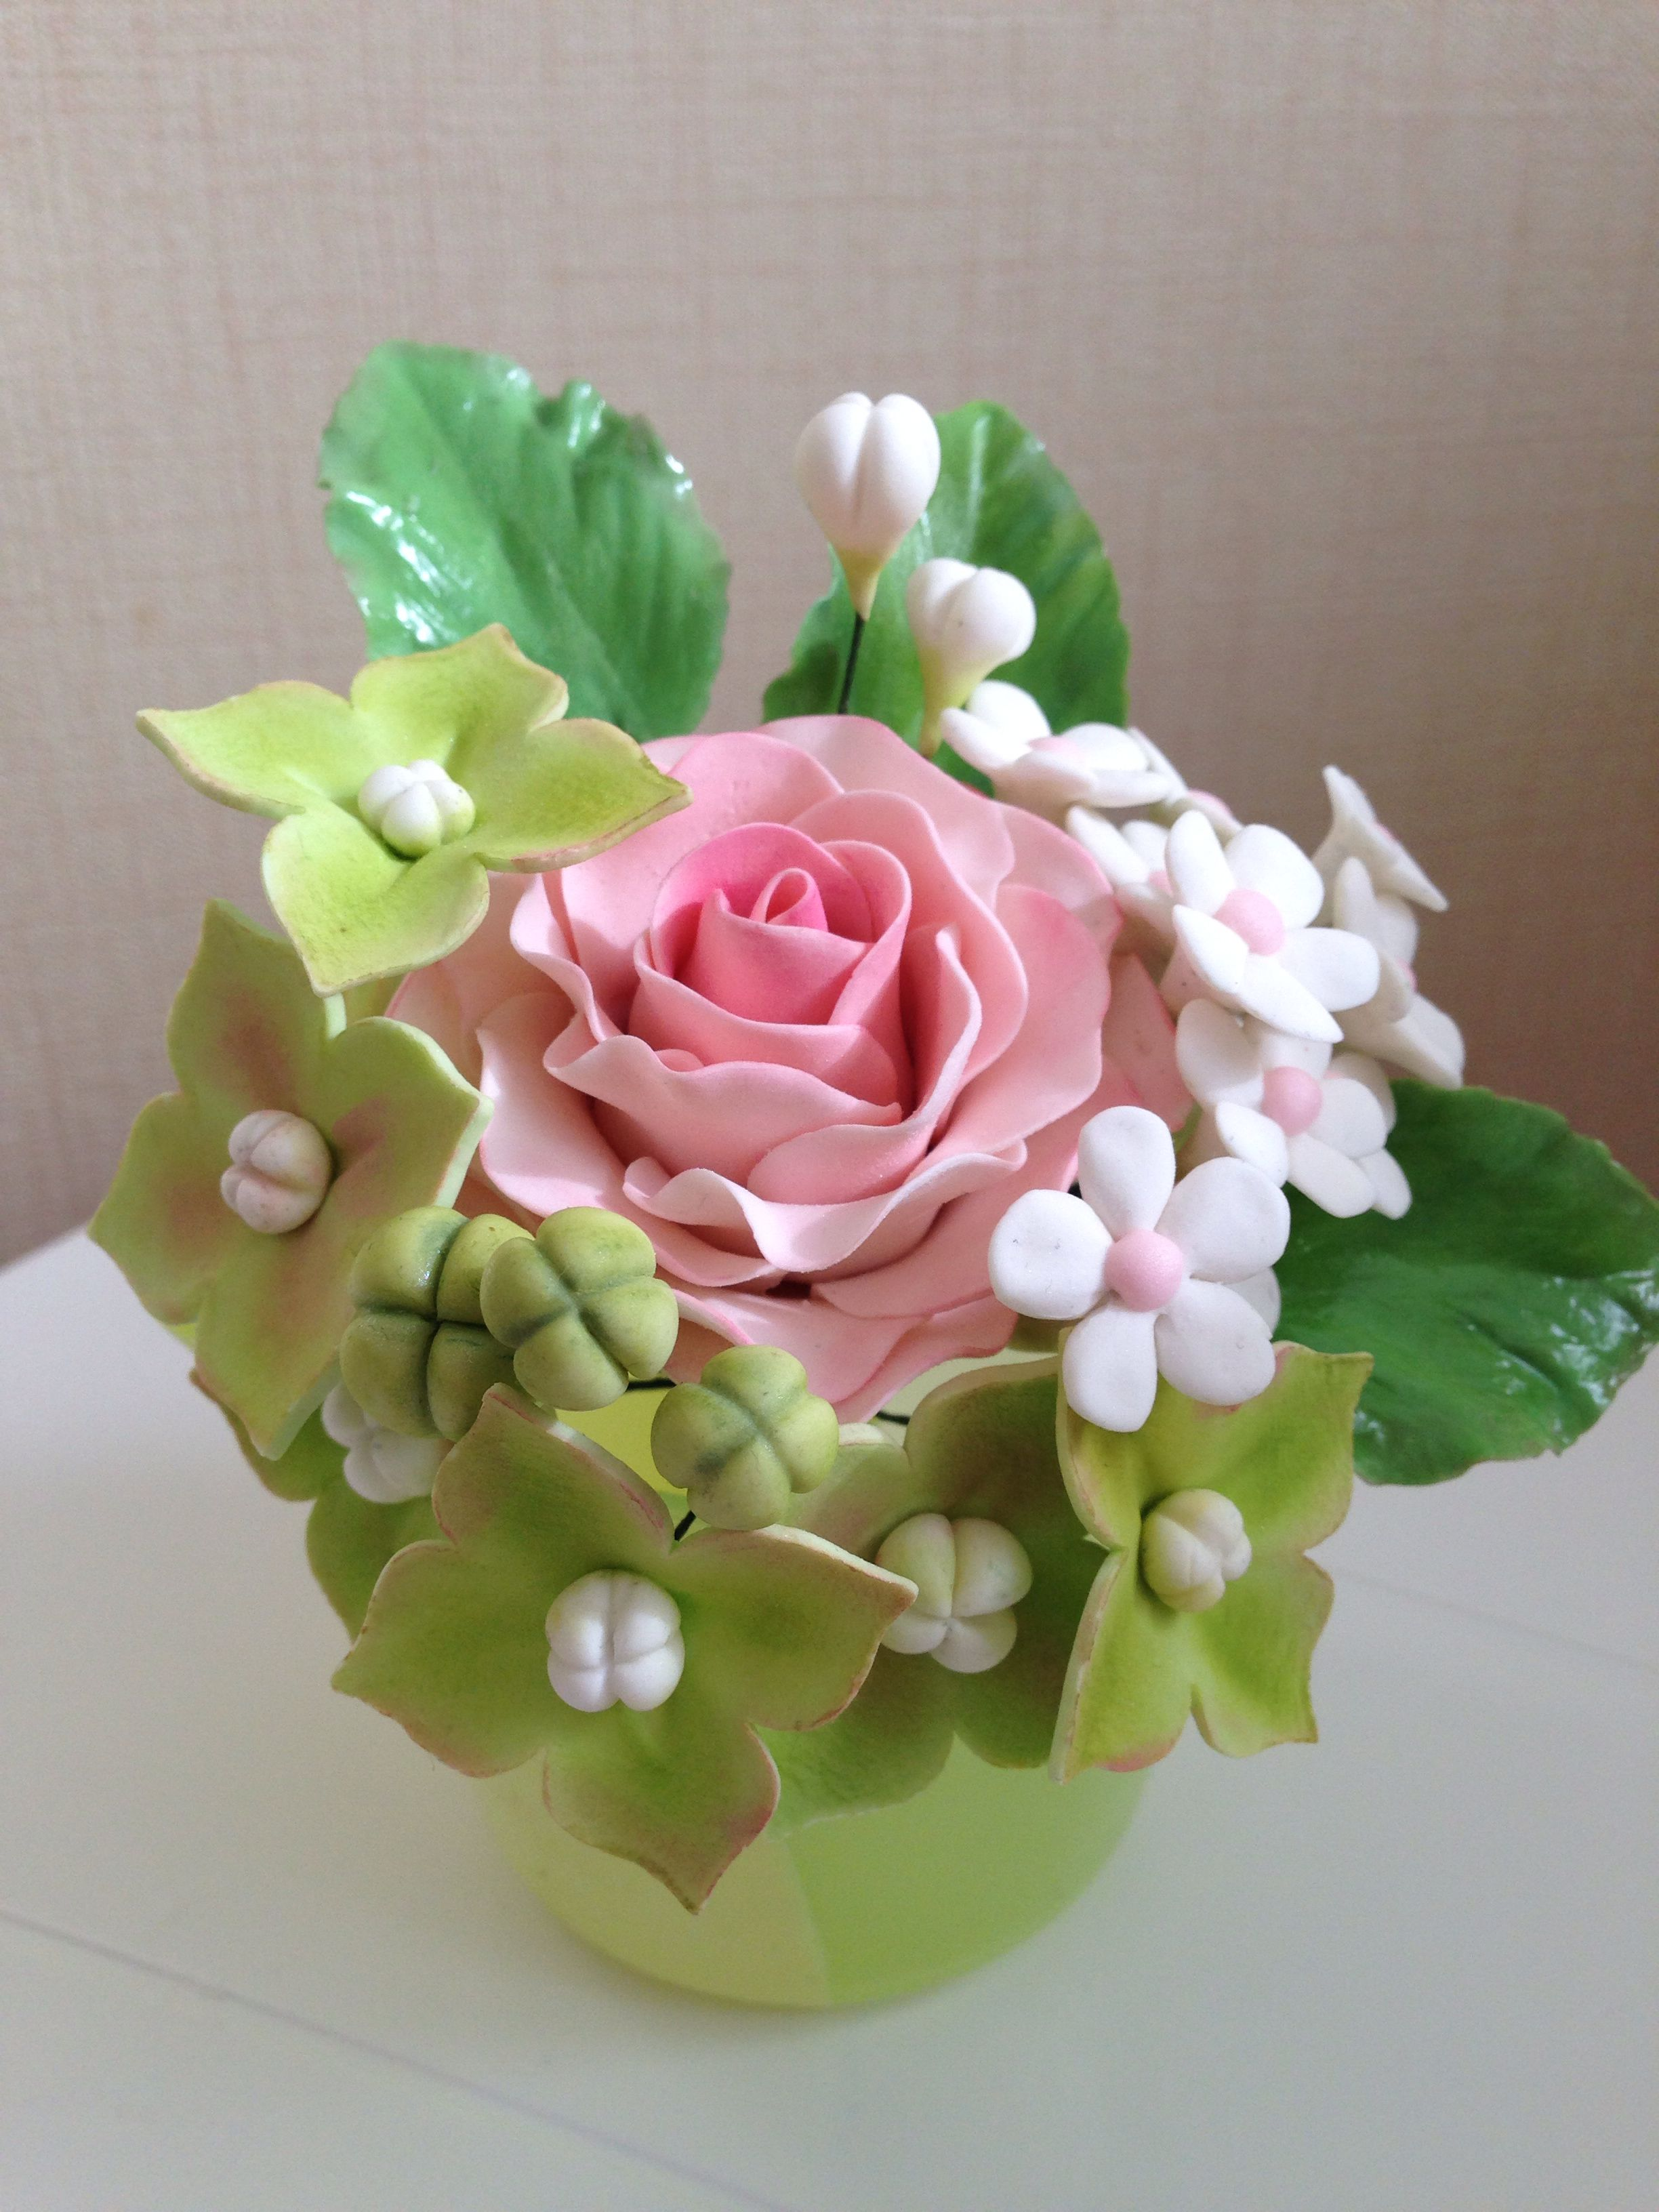 Bouquet with rose my sugar flowers pinterest sugar flowers gum paste flowers nosegay bouquet with rose izmirmasajfo